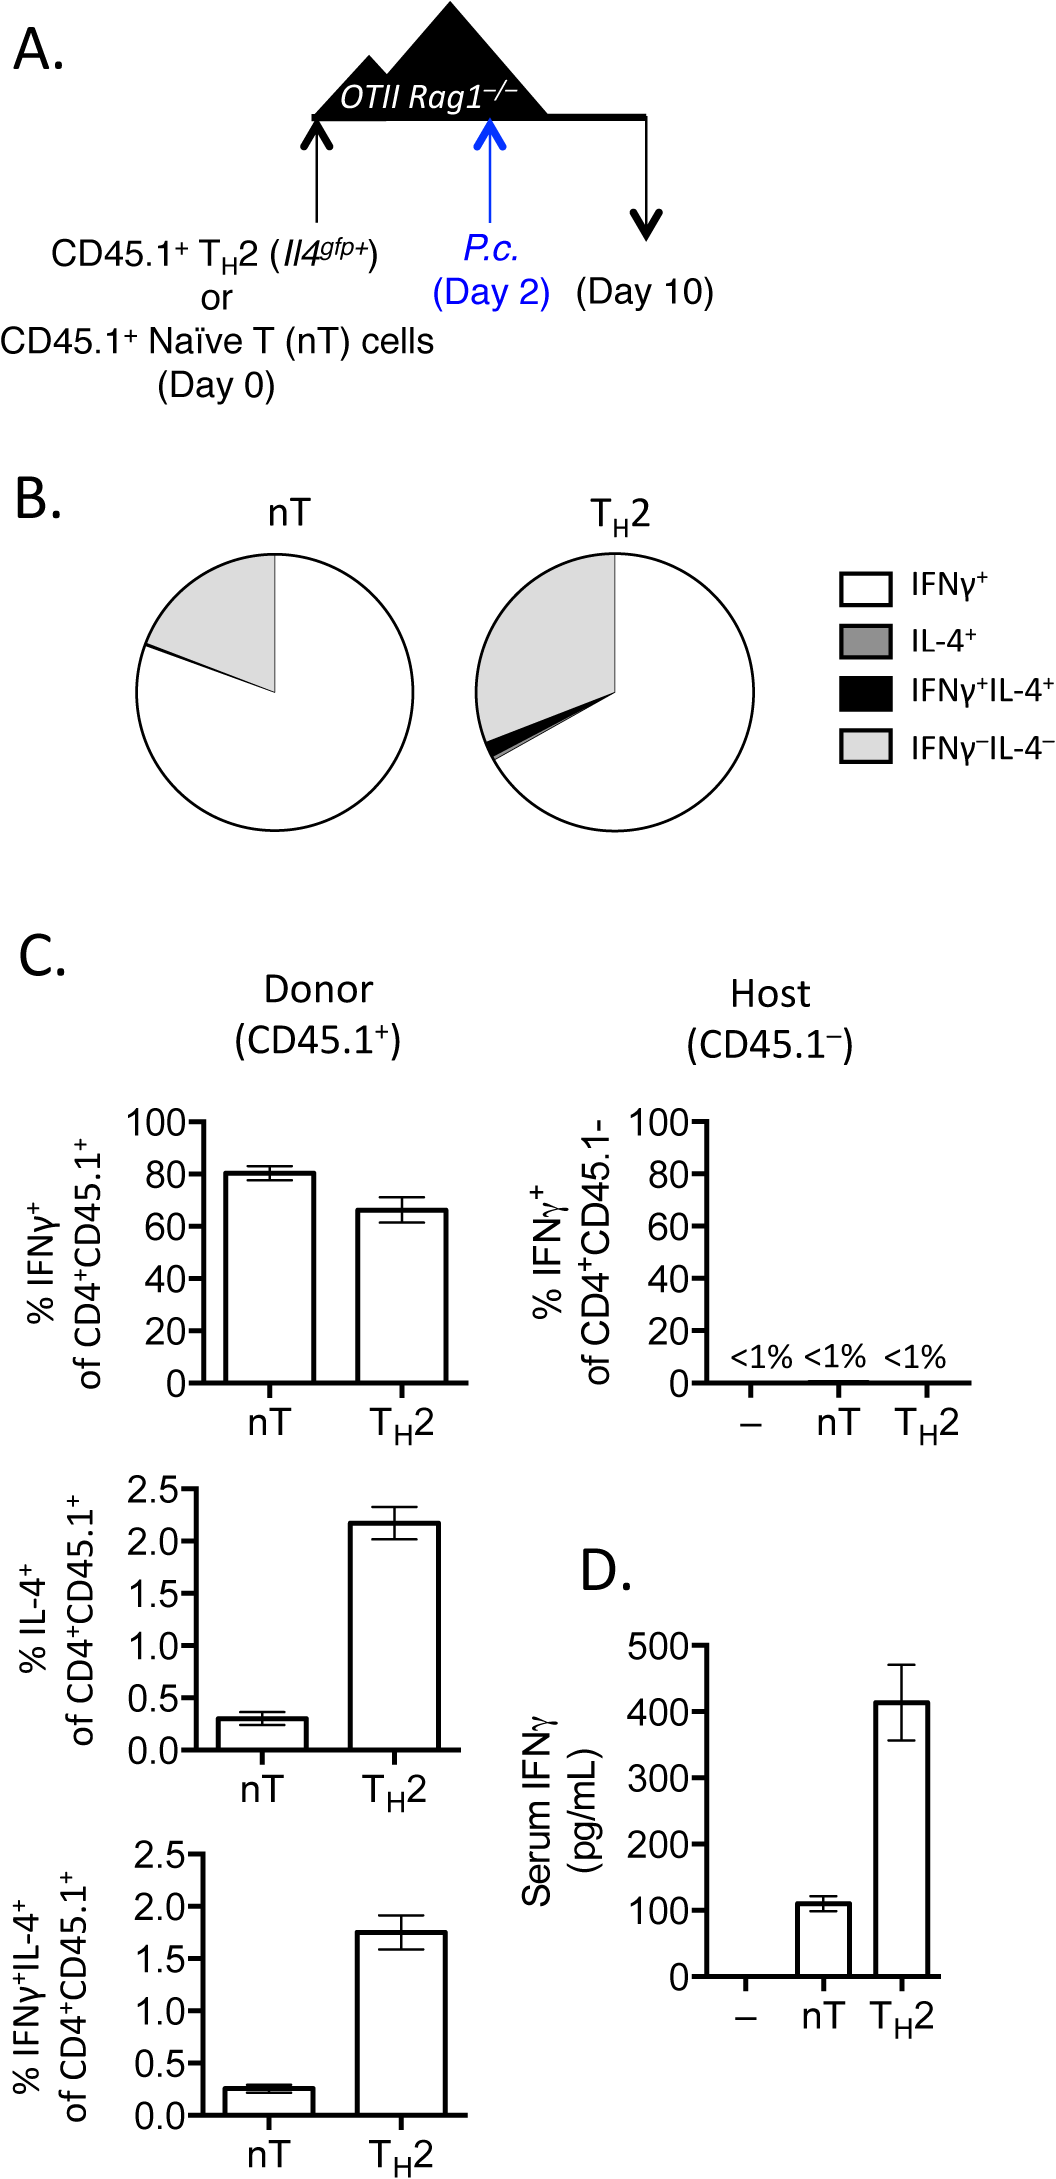 IFNγ production by Th2 cells does not depend on lymphopenia.